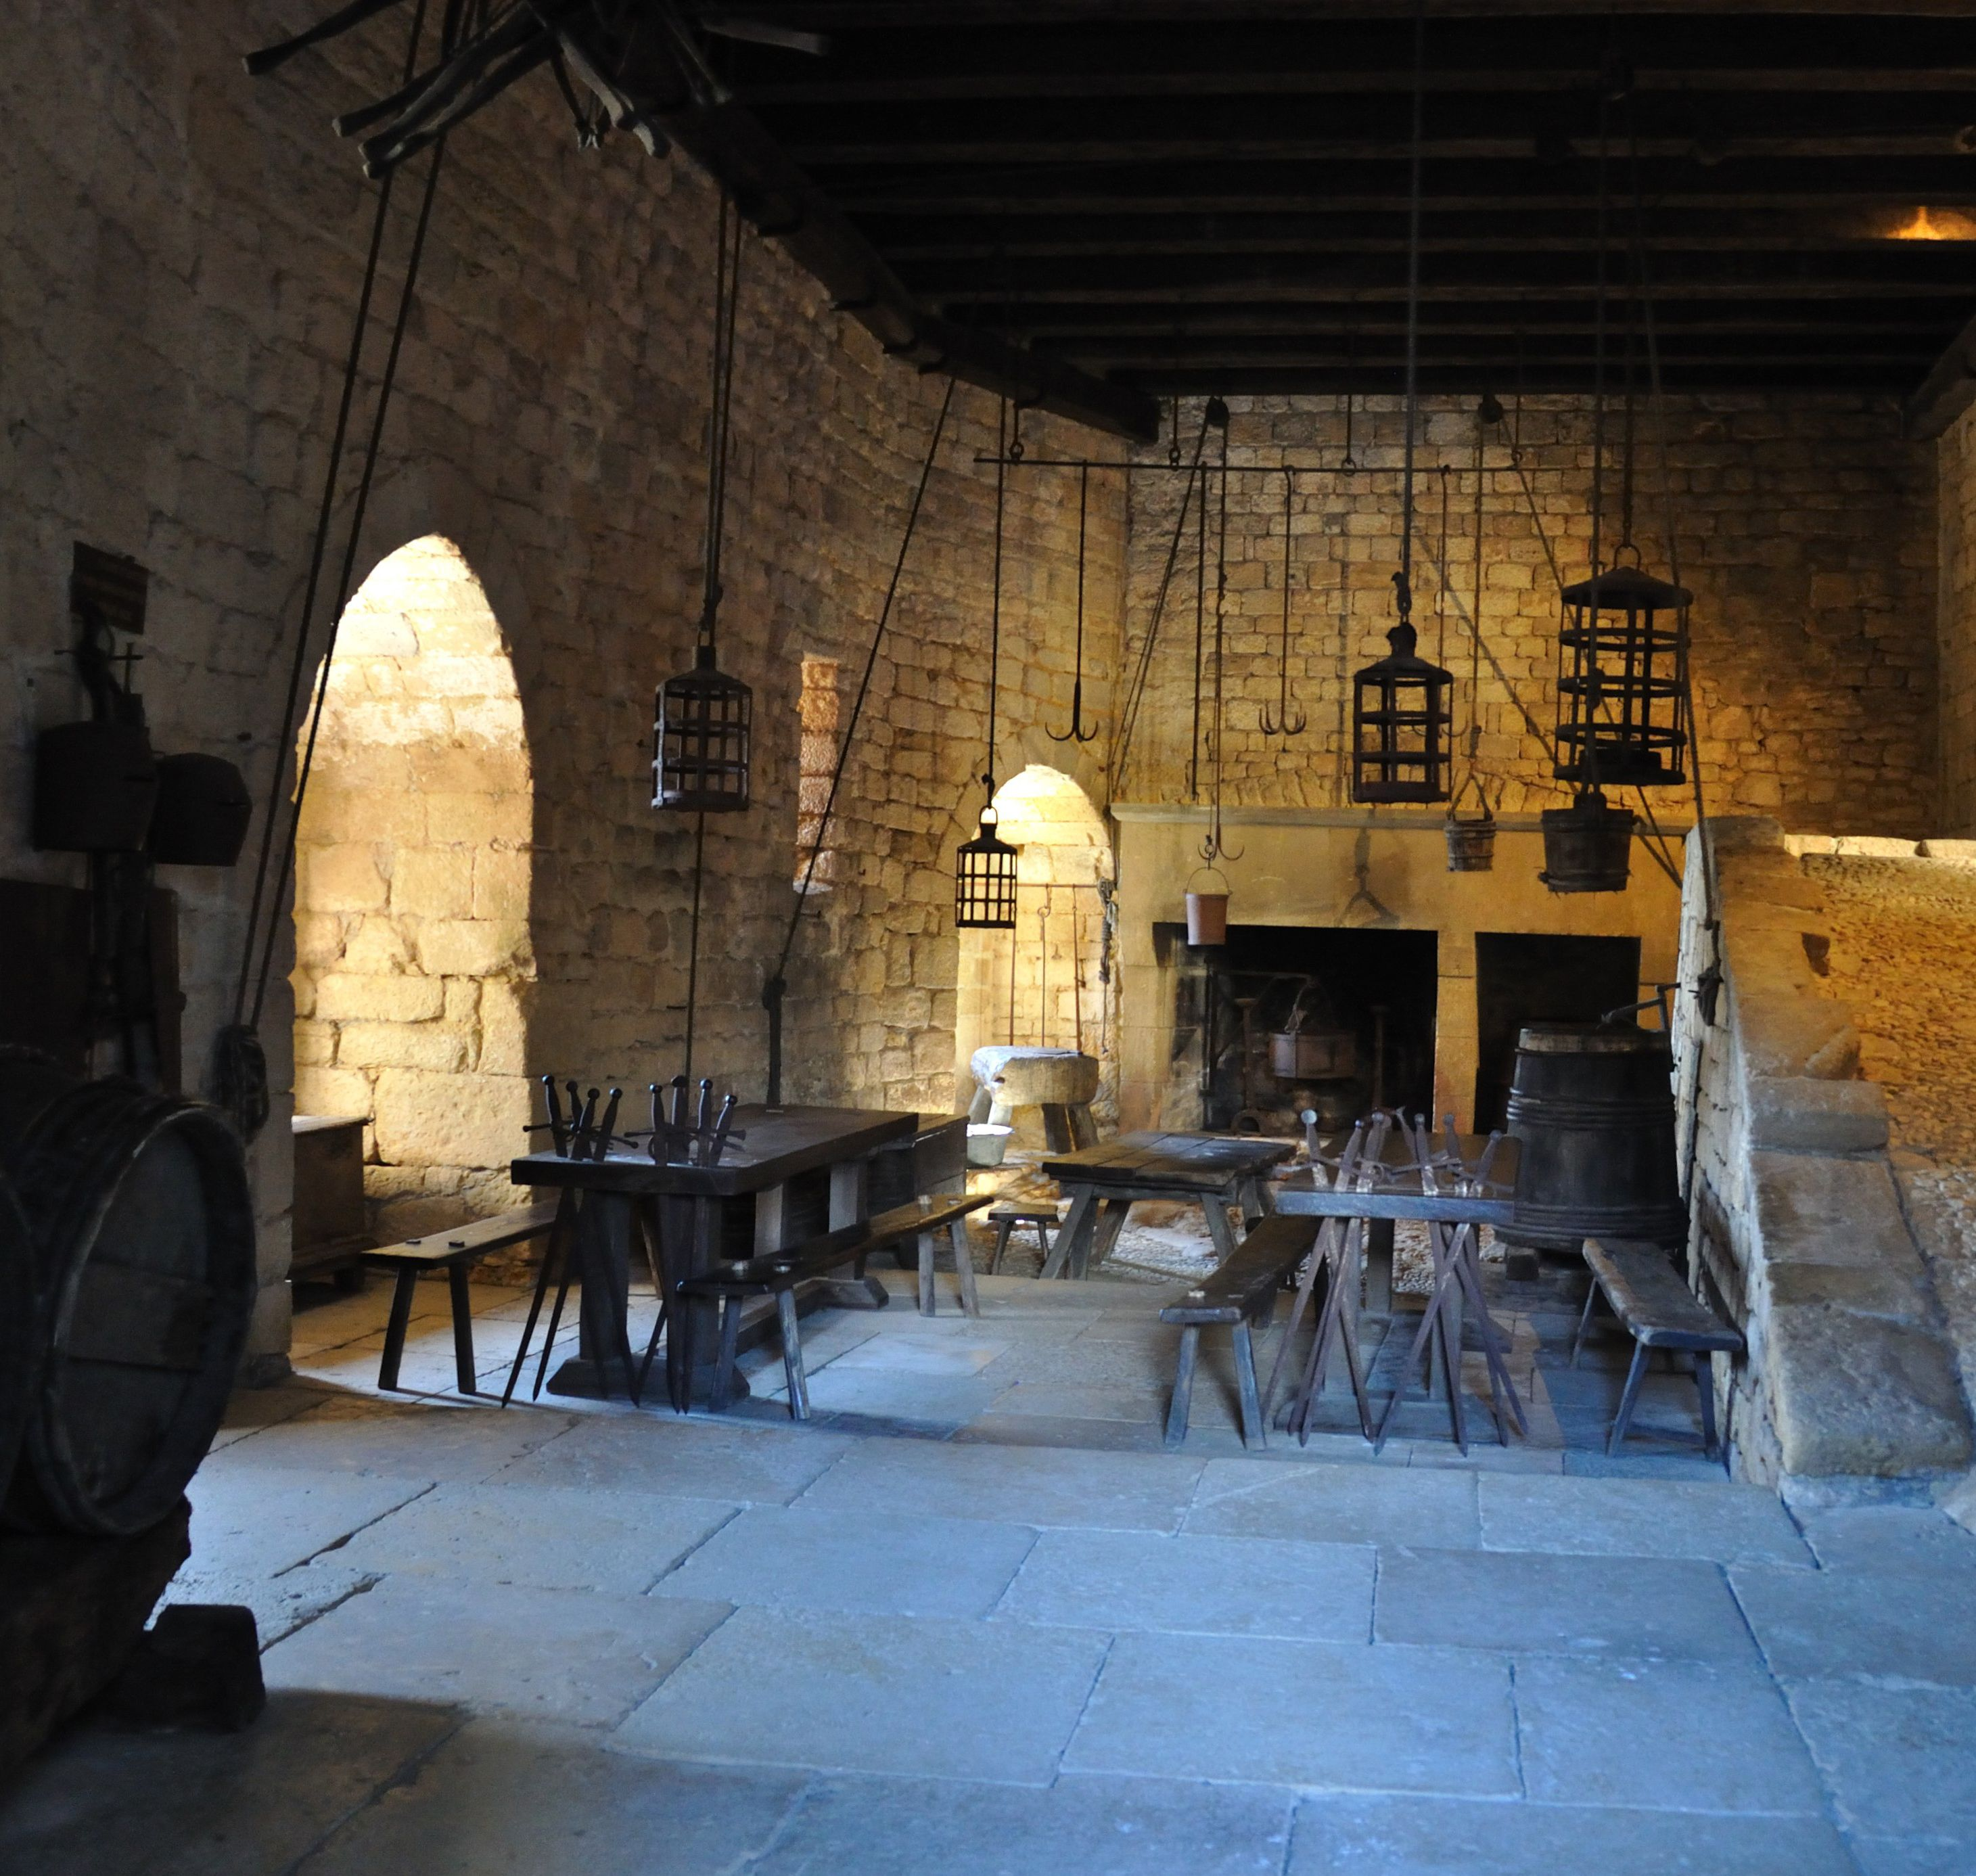 medieval castle beynac kitchengalley with wood fired stone cooking hearth the chteau de beynac is a castle situated in the commune of beynac et cazenac